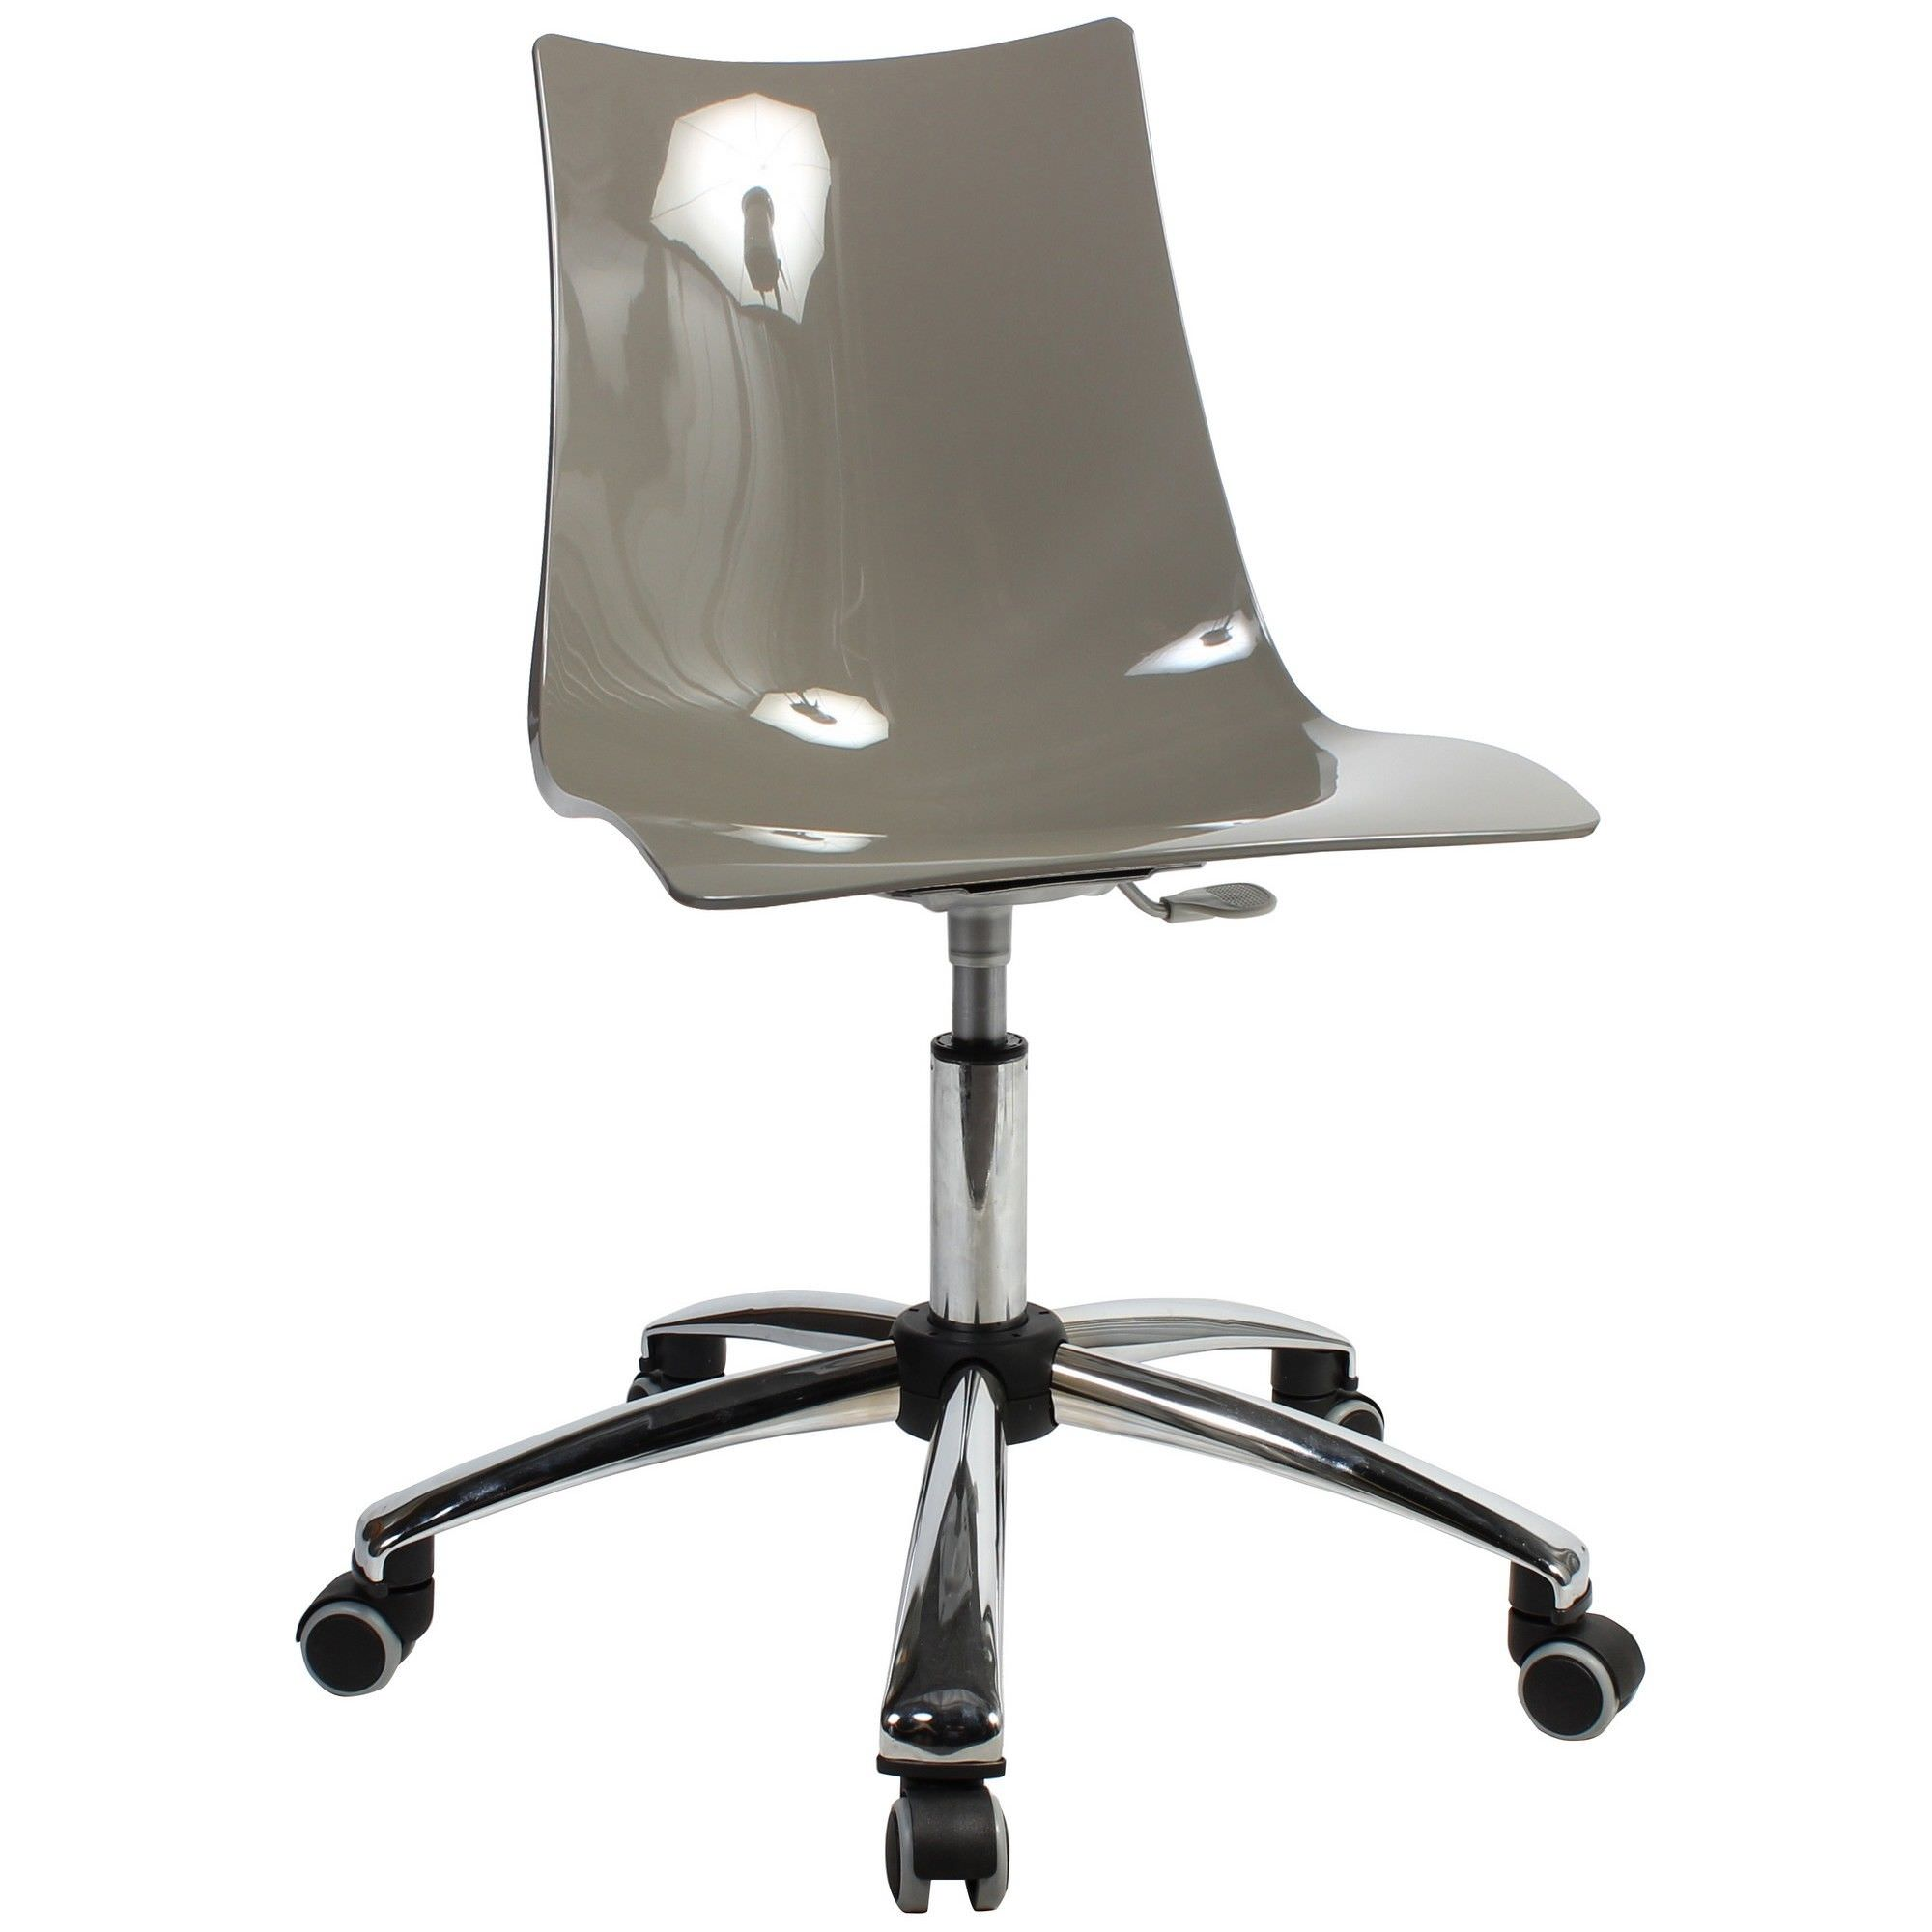 Zebra Italian Made Commercial Grade Gas Lift Office Chair, Dove Grey